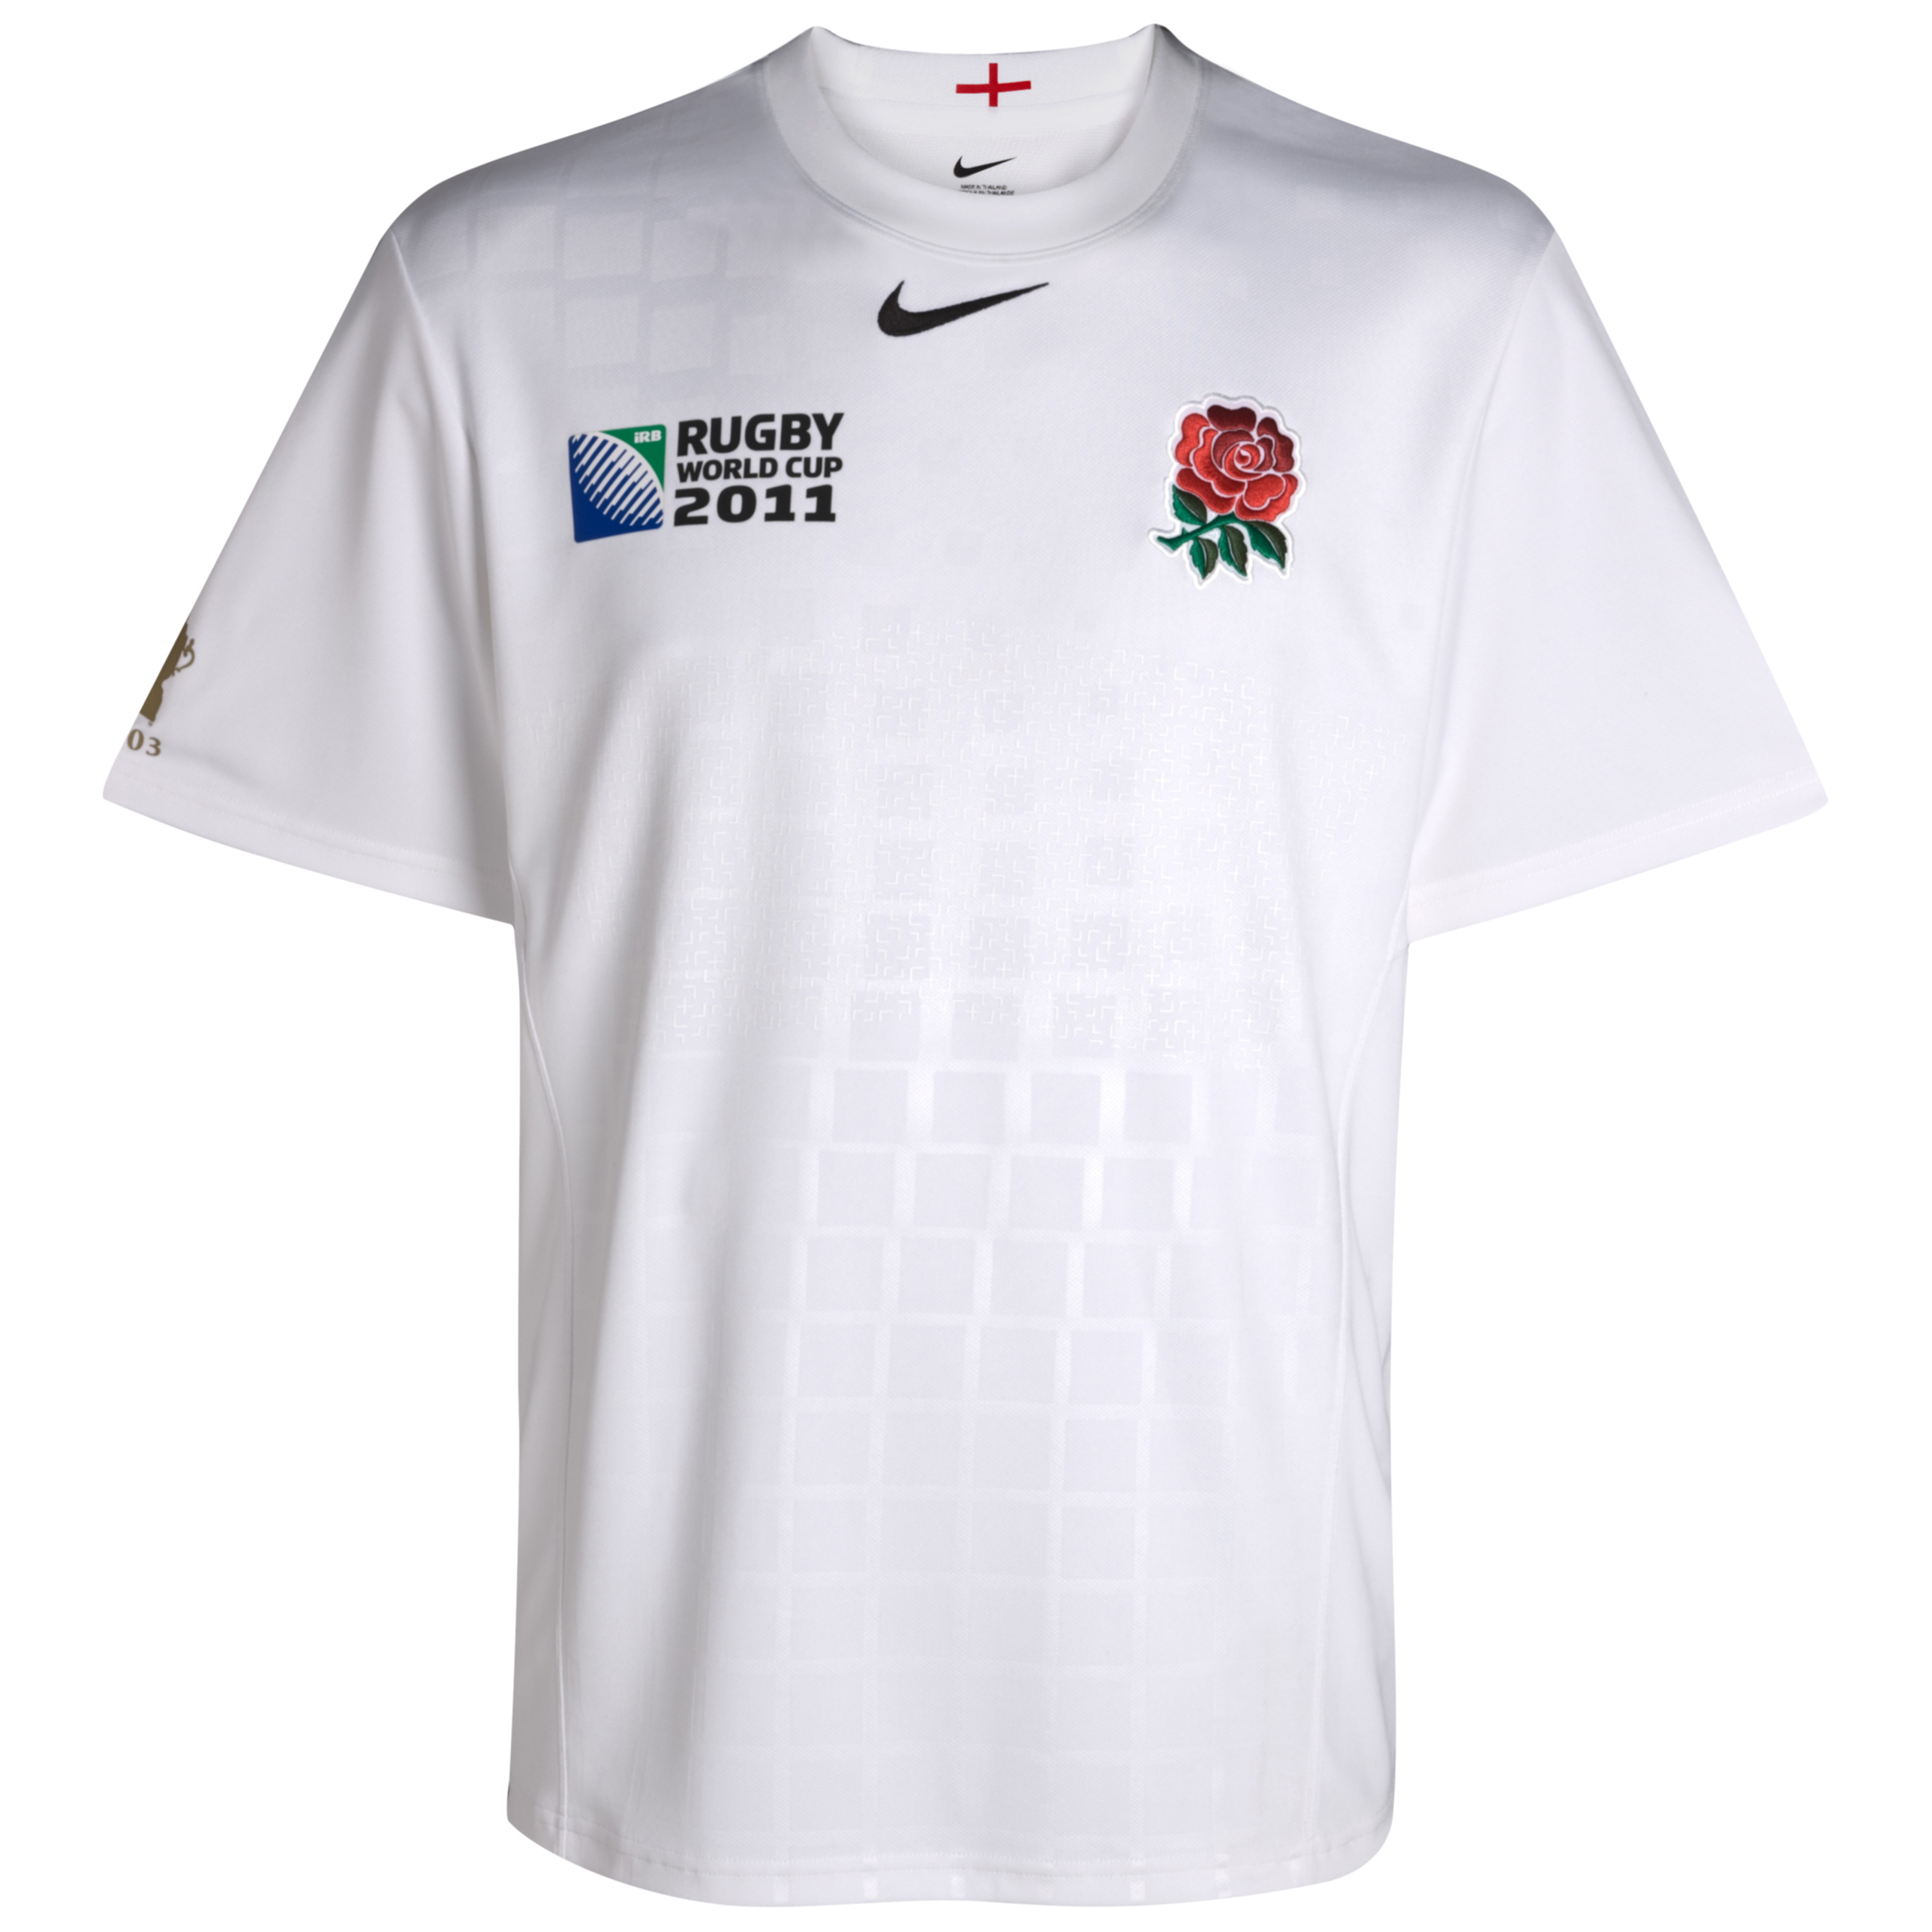 England Rugby World Cup 2011 Home Replica Shirt. for 20€